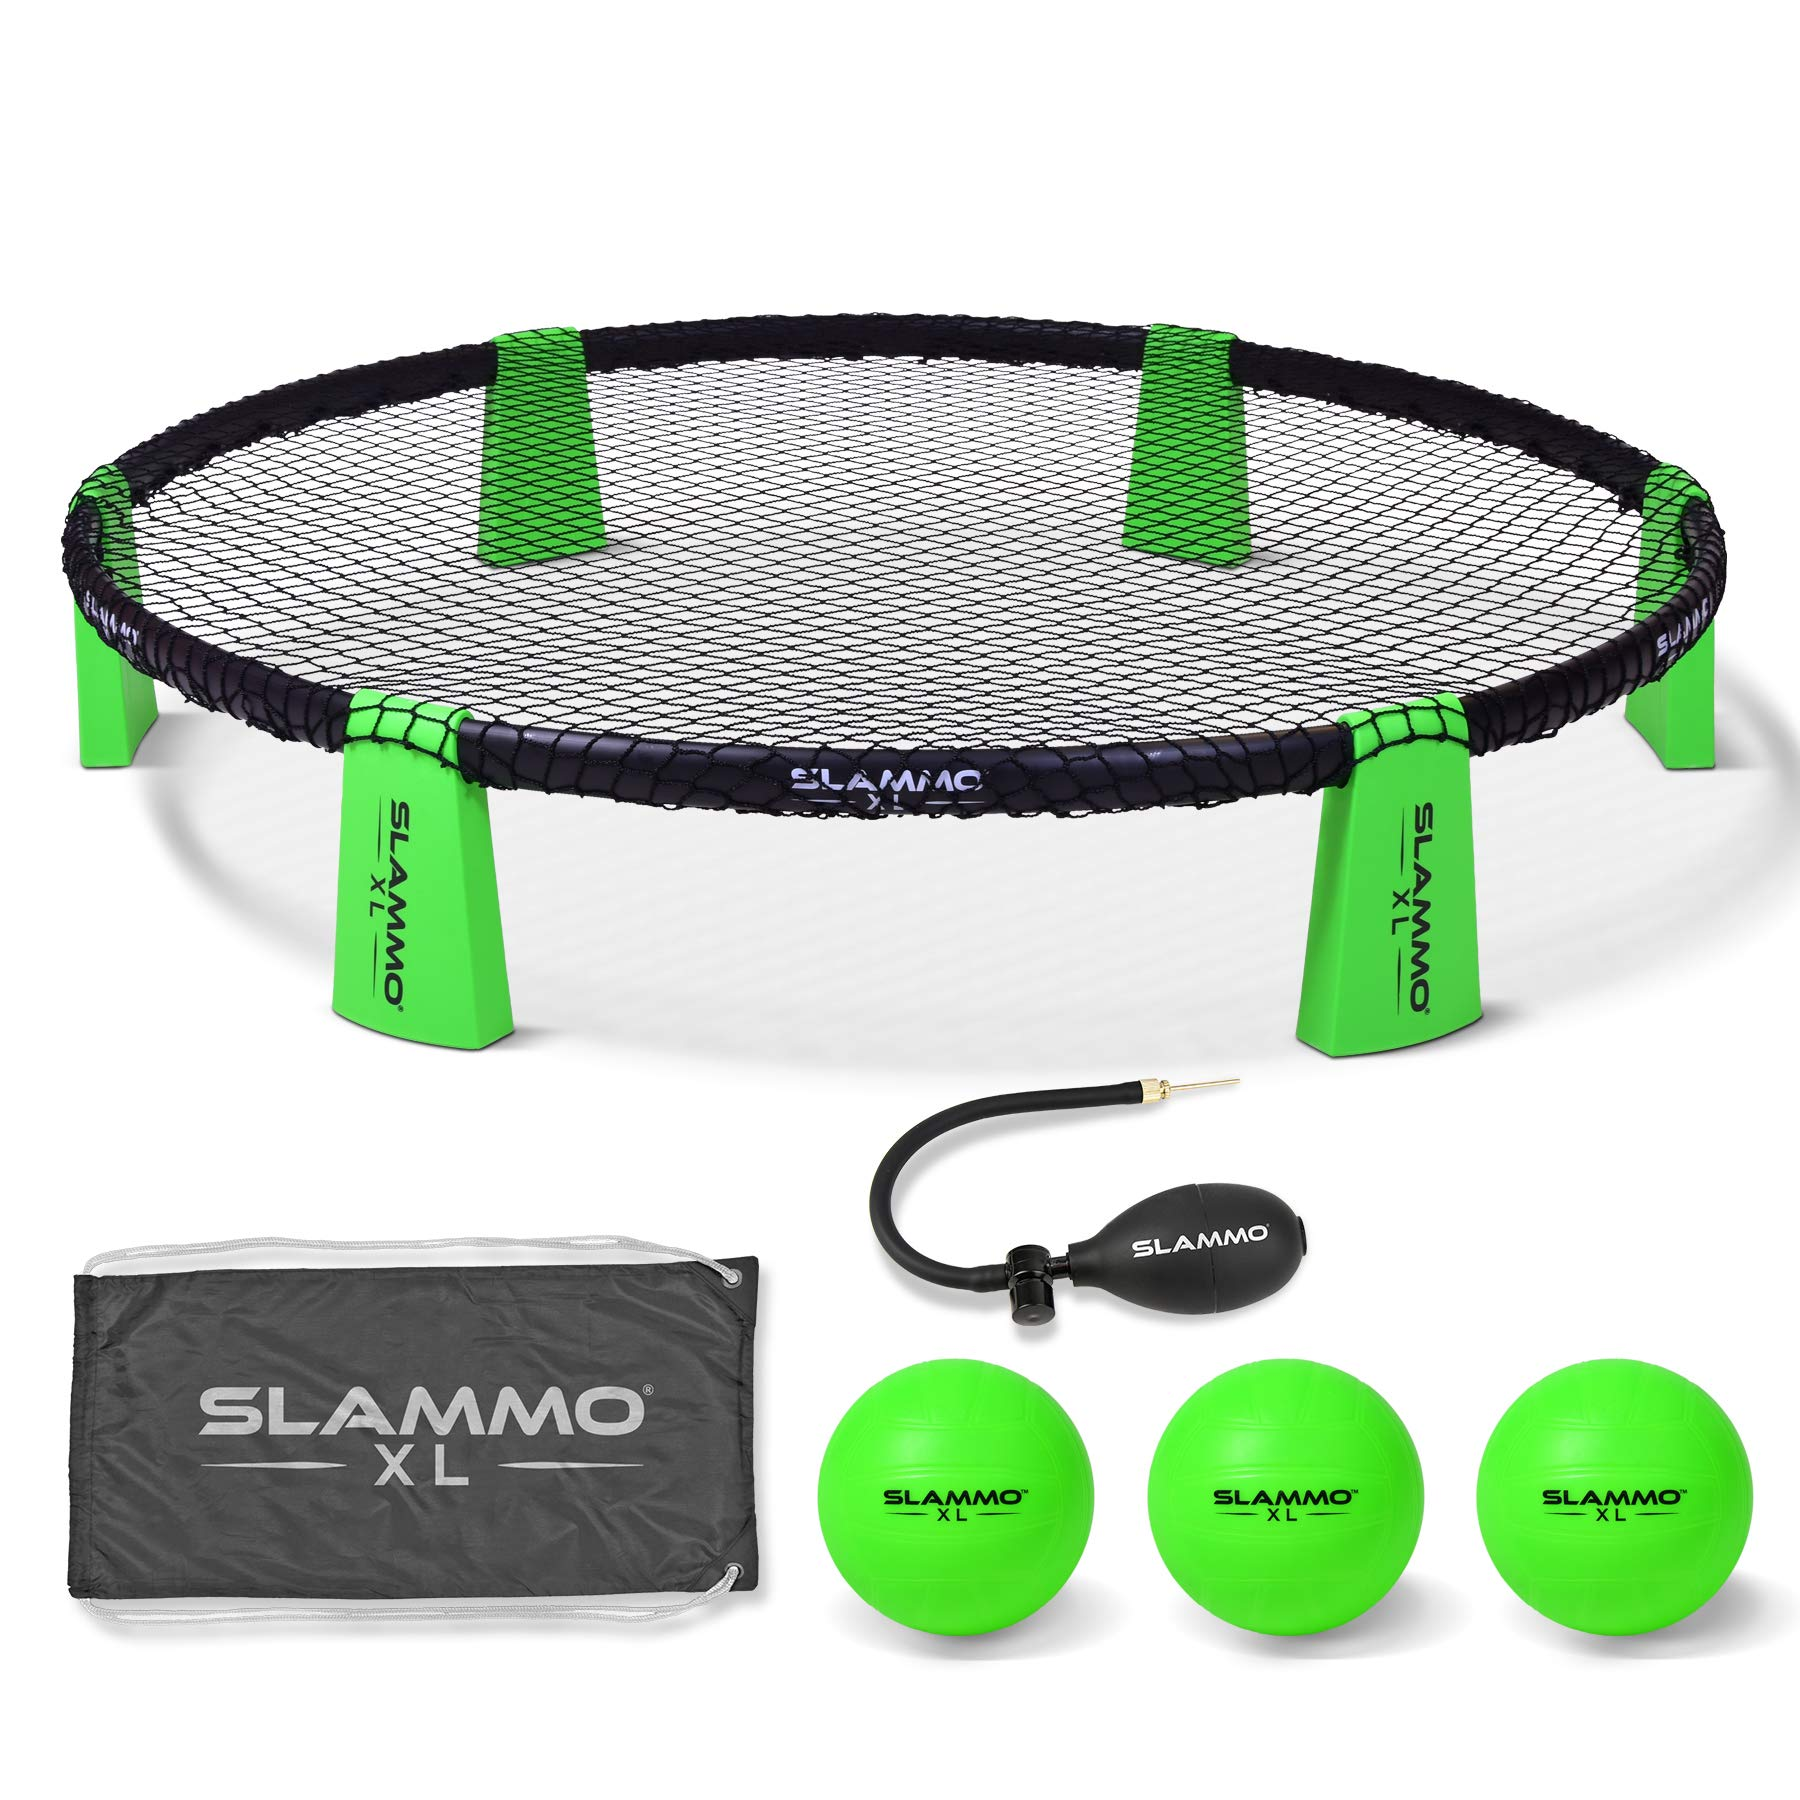 GoSports Slammo XL Game Set | Huge 48'' Net | Great for Beginners, Younger Players or Group Play by GoSports